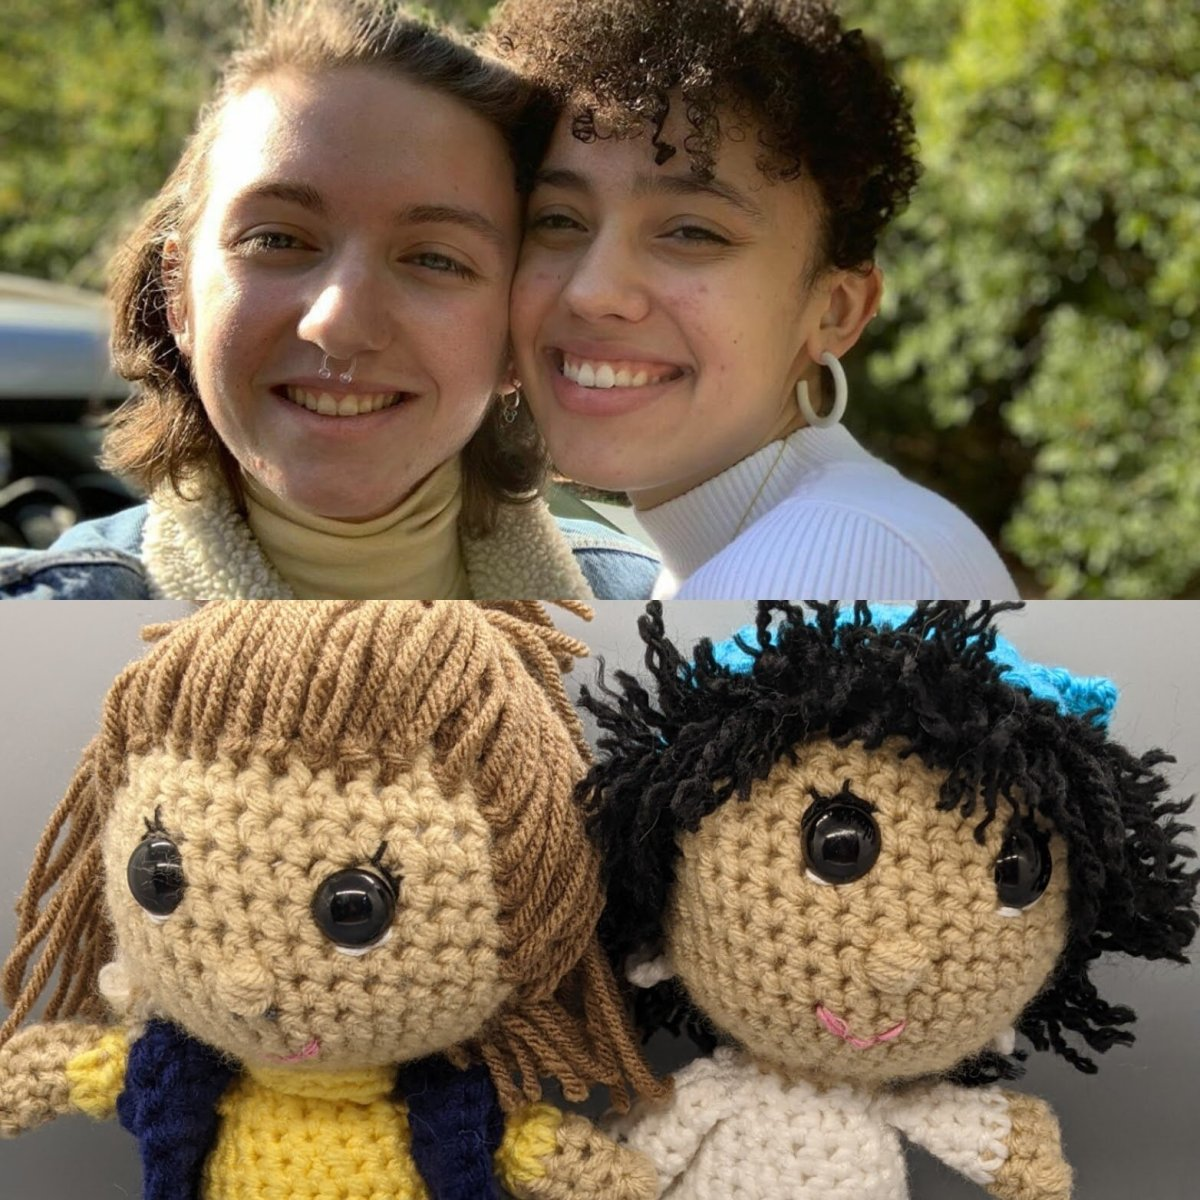 A real life human couple on top and a crocheted version of the couple on the bottom